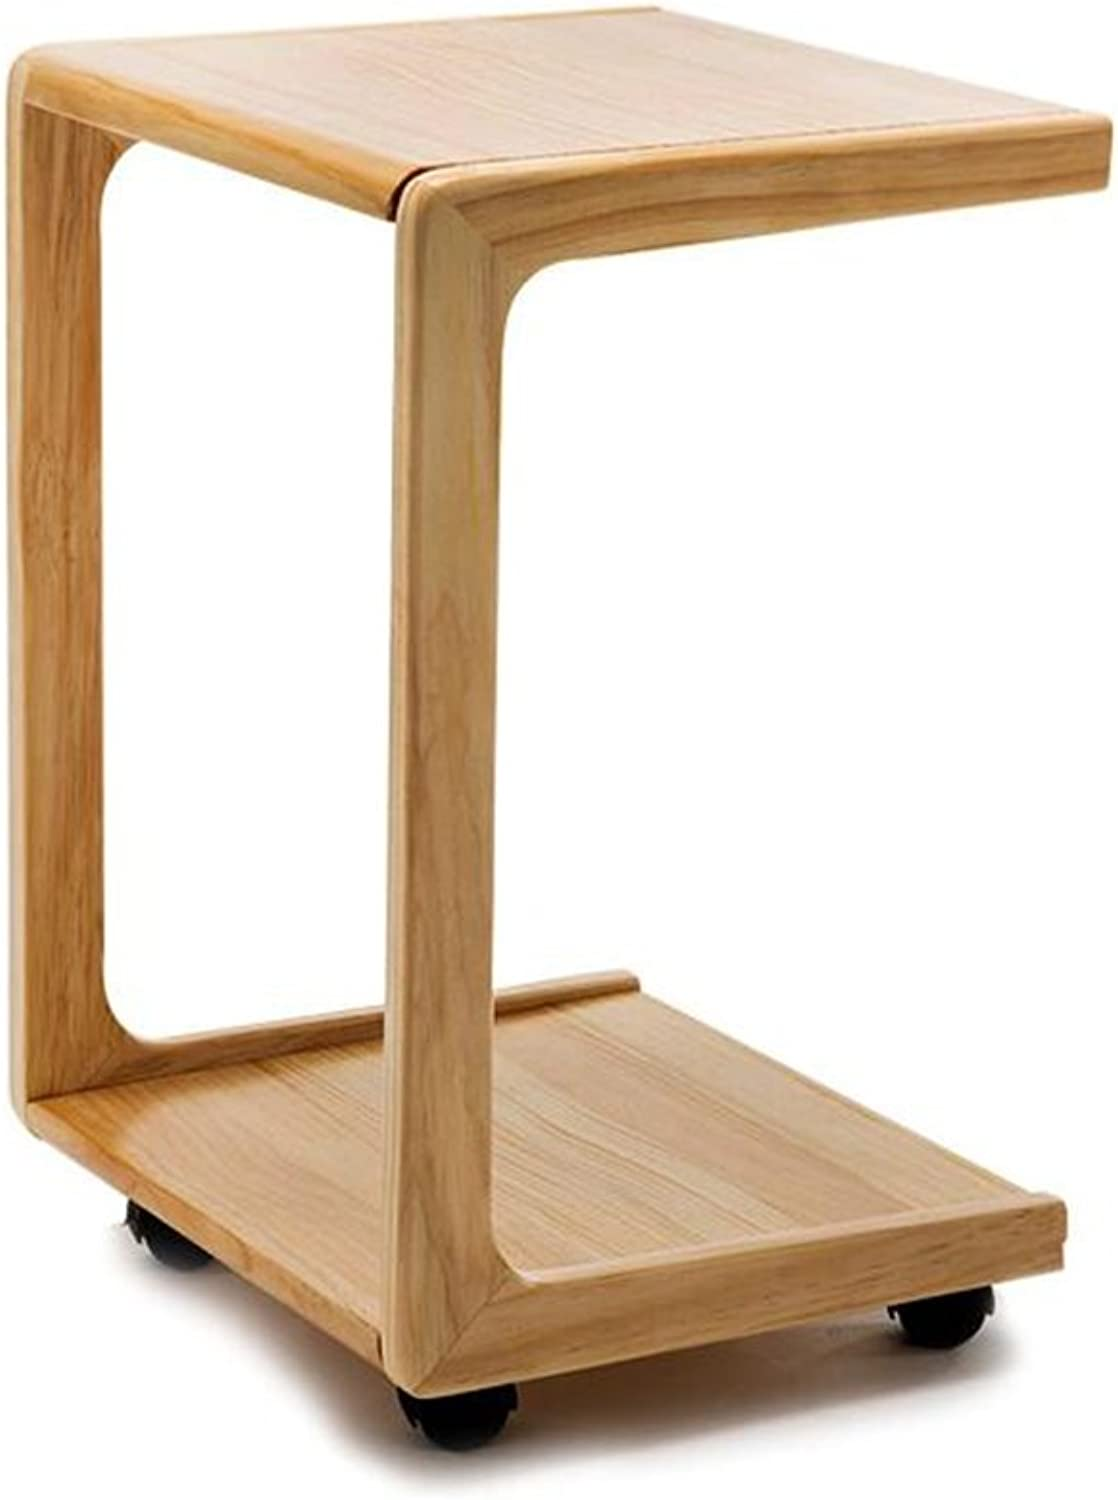 Moving Bedside Table, Wooden Sofa Table Side Bookshelf Small Coffee Table